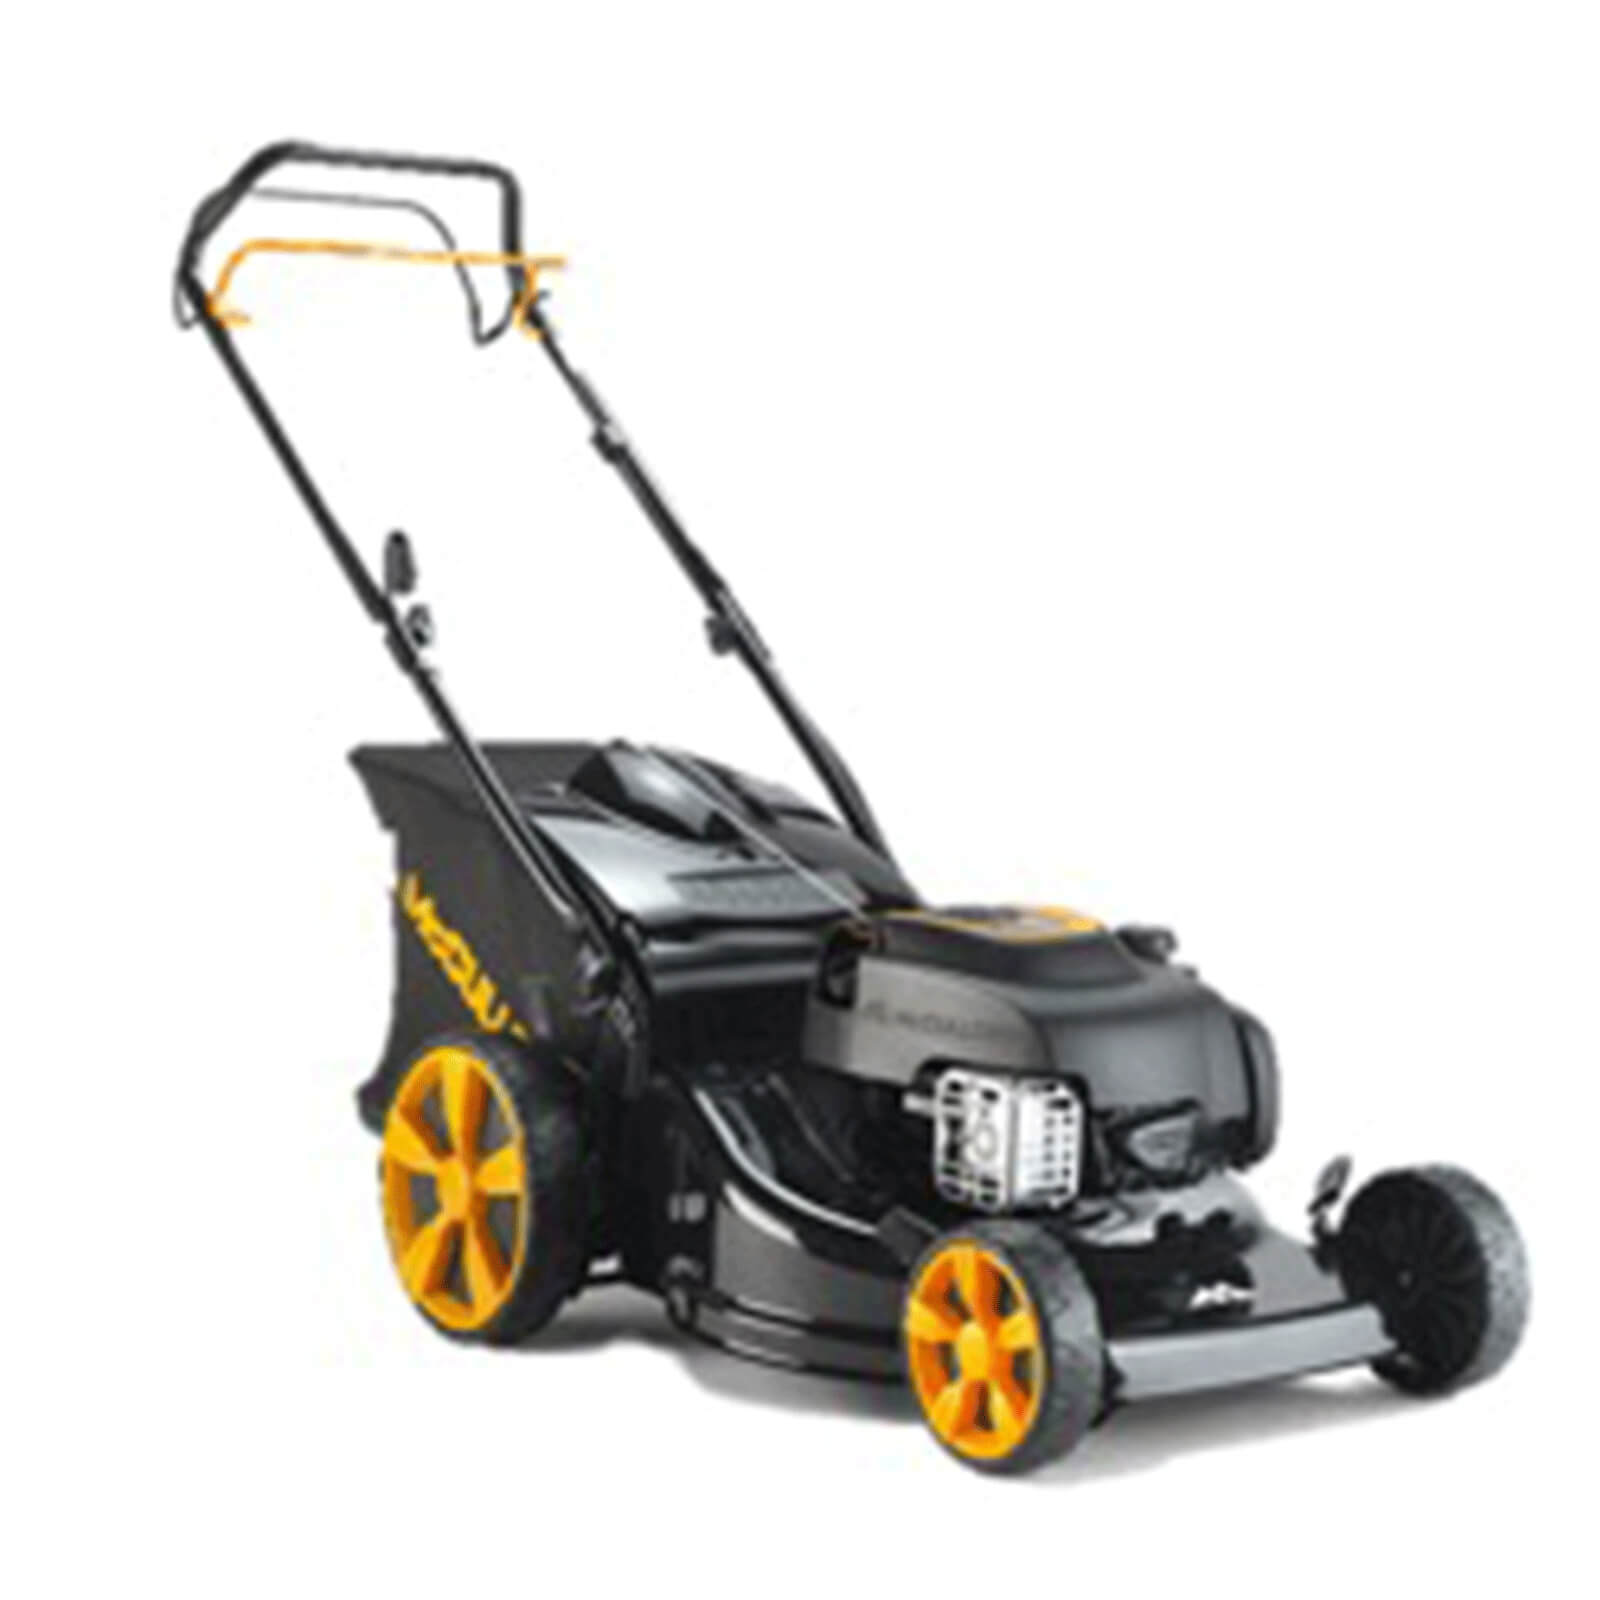 Image of McCulloch M51-140WR CLASSIC PLUS Self Propelled Petrol Rotary Lawnmower 510mm